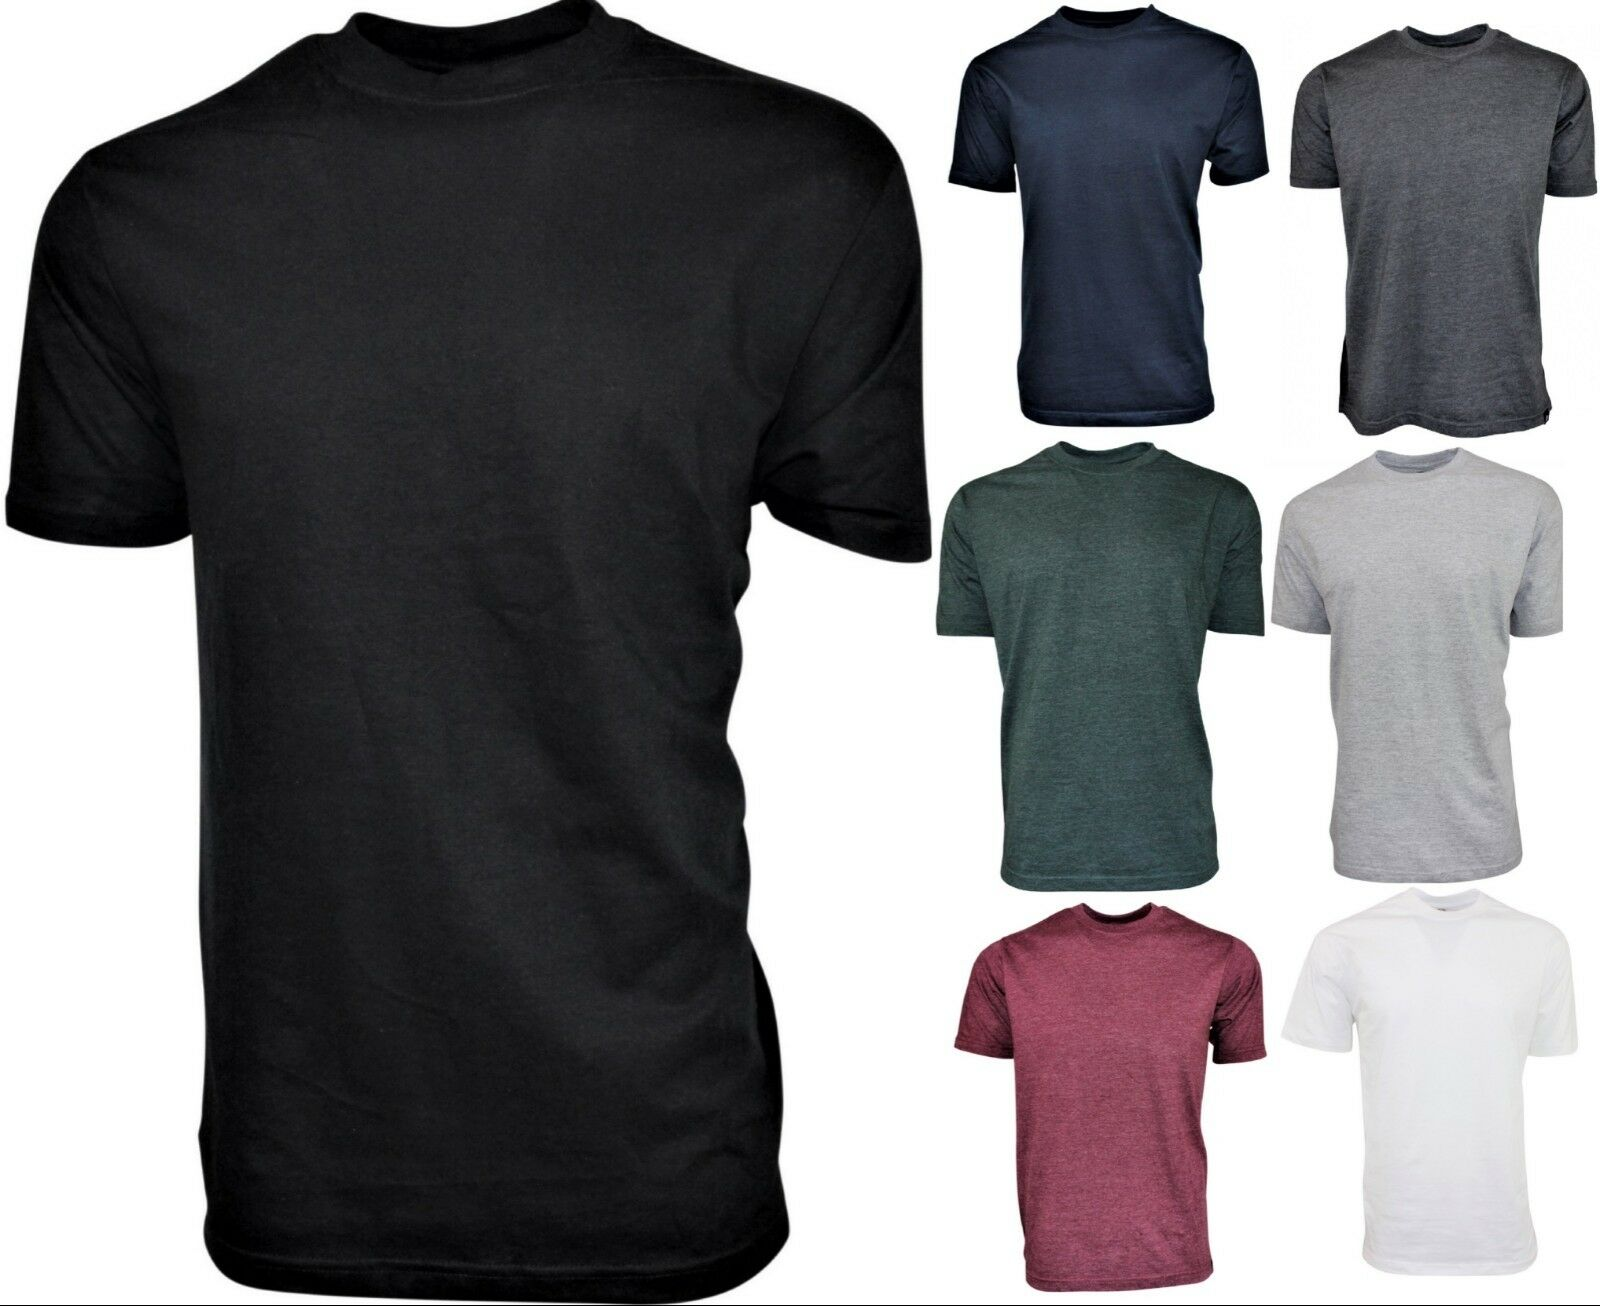 Dickies Short Sleeve T Shirt for Men- 7 Colors Available in